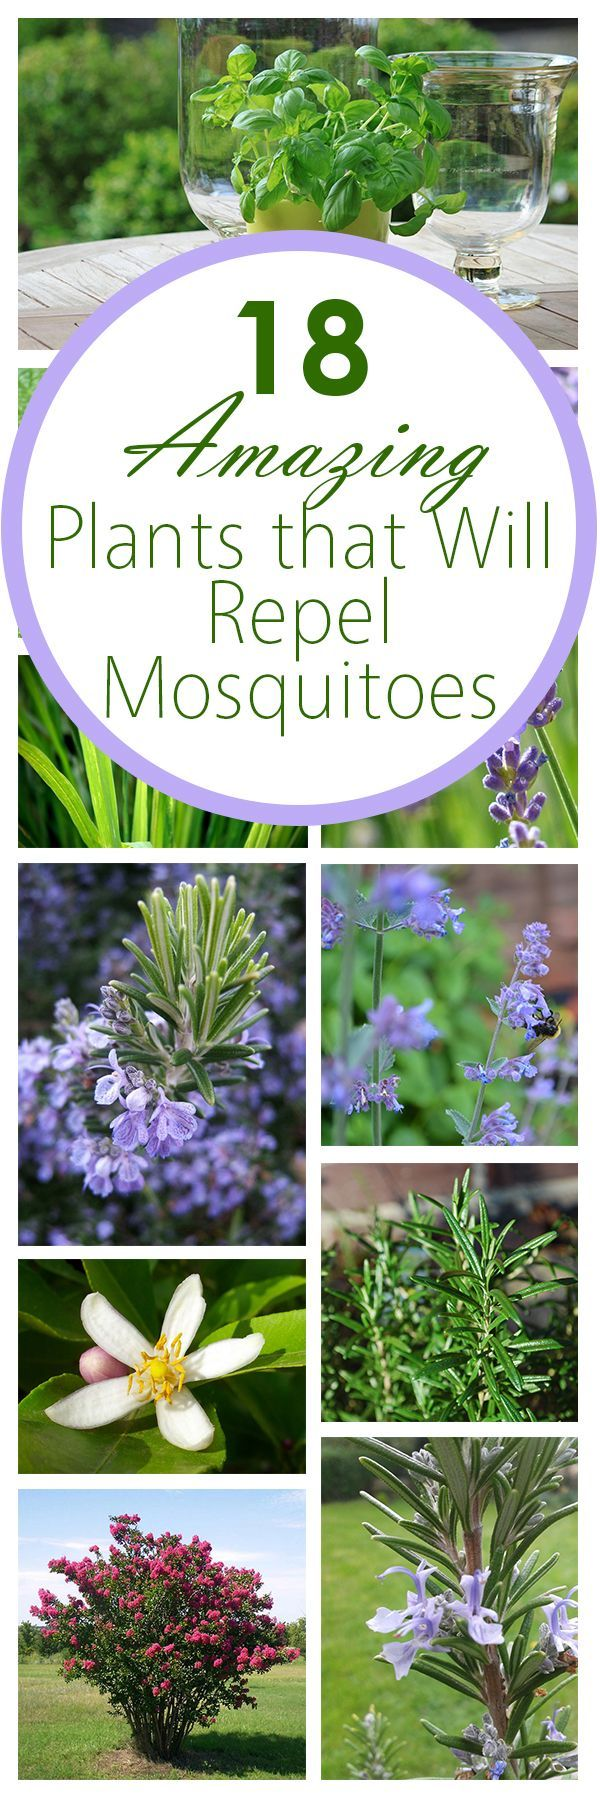 Natural pest control, mosquito control, natural mosquito repellent, gardening hacks, garden pest control, tips and tricks, gardening tips and tricks, popular pin